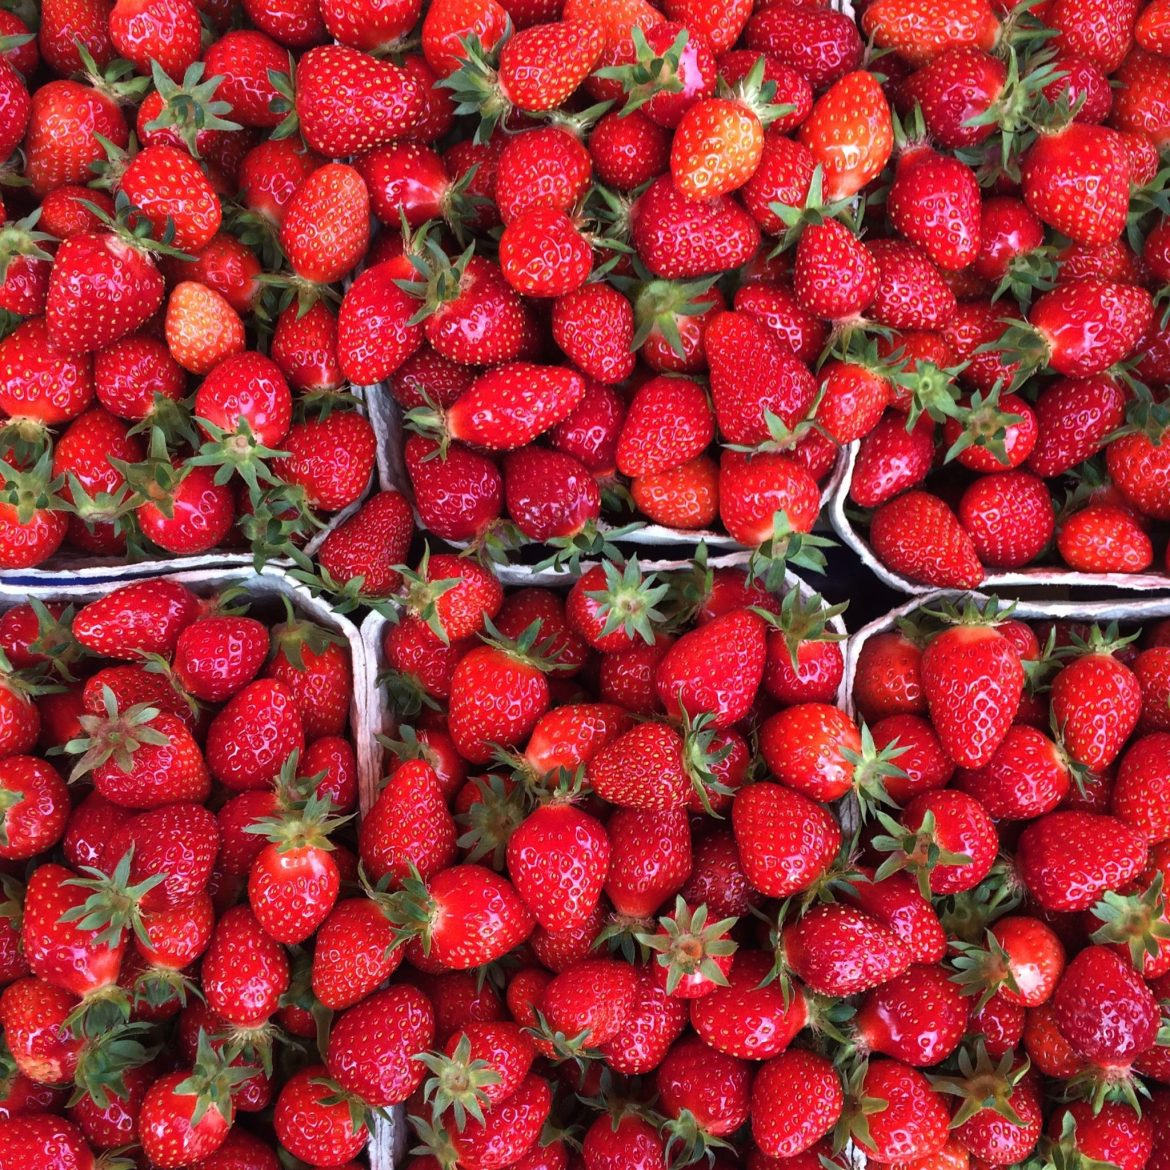 Punnets of fresh strawberries from above